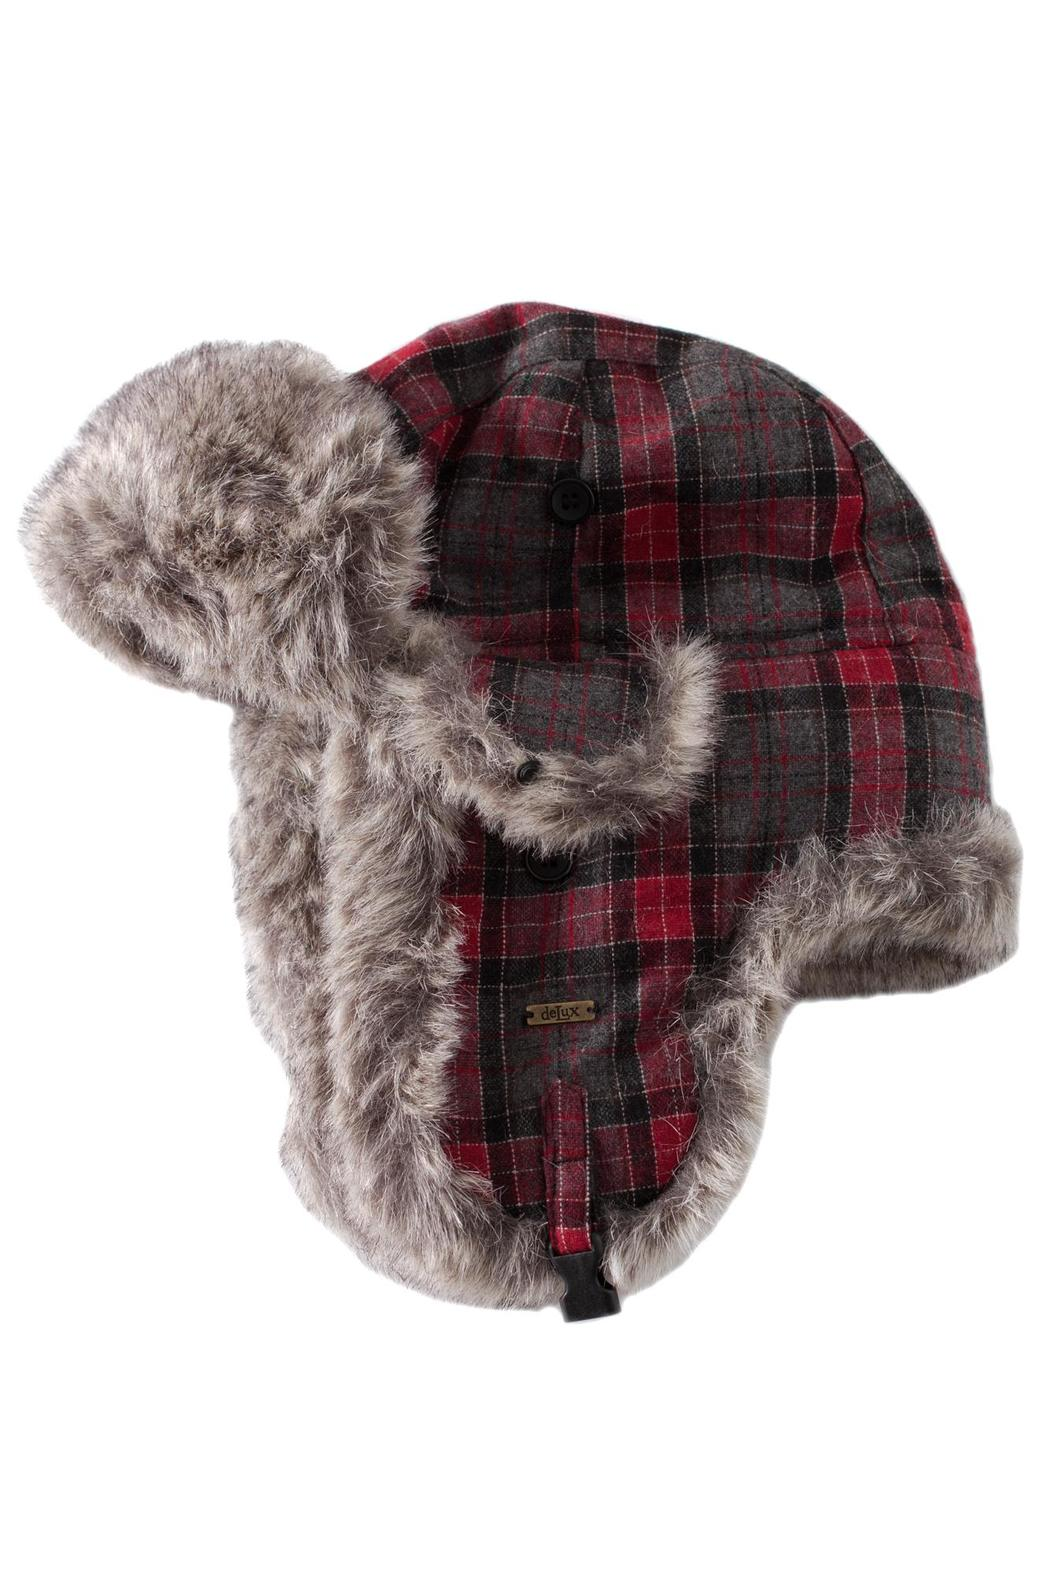 769da68bd8ac5 DeLux Plaid Trapper Hat from Philadelphia by May 23 — Shoptiques